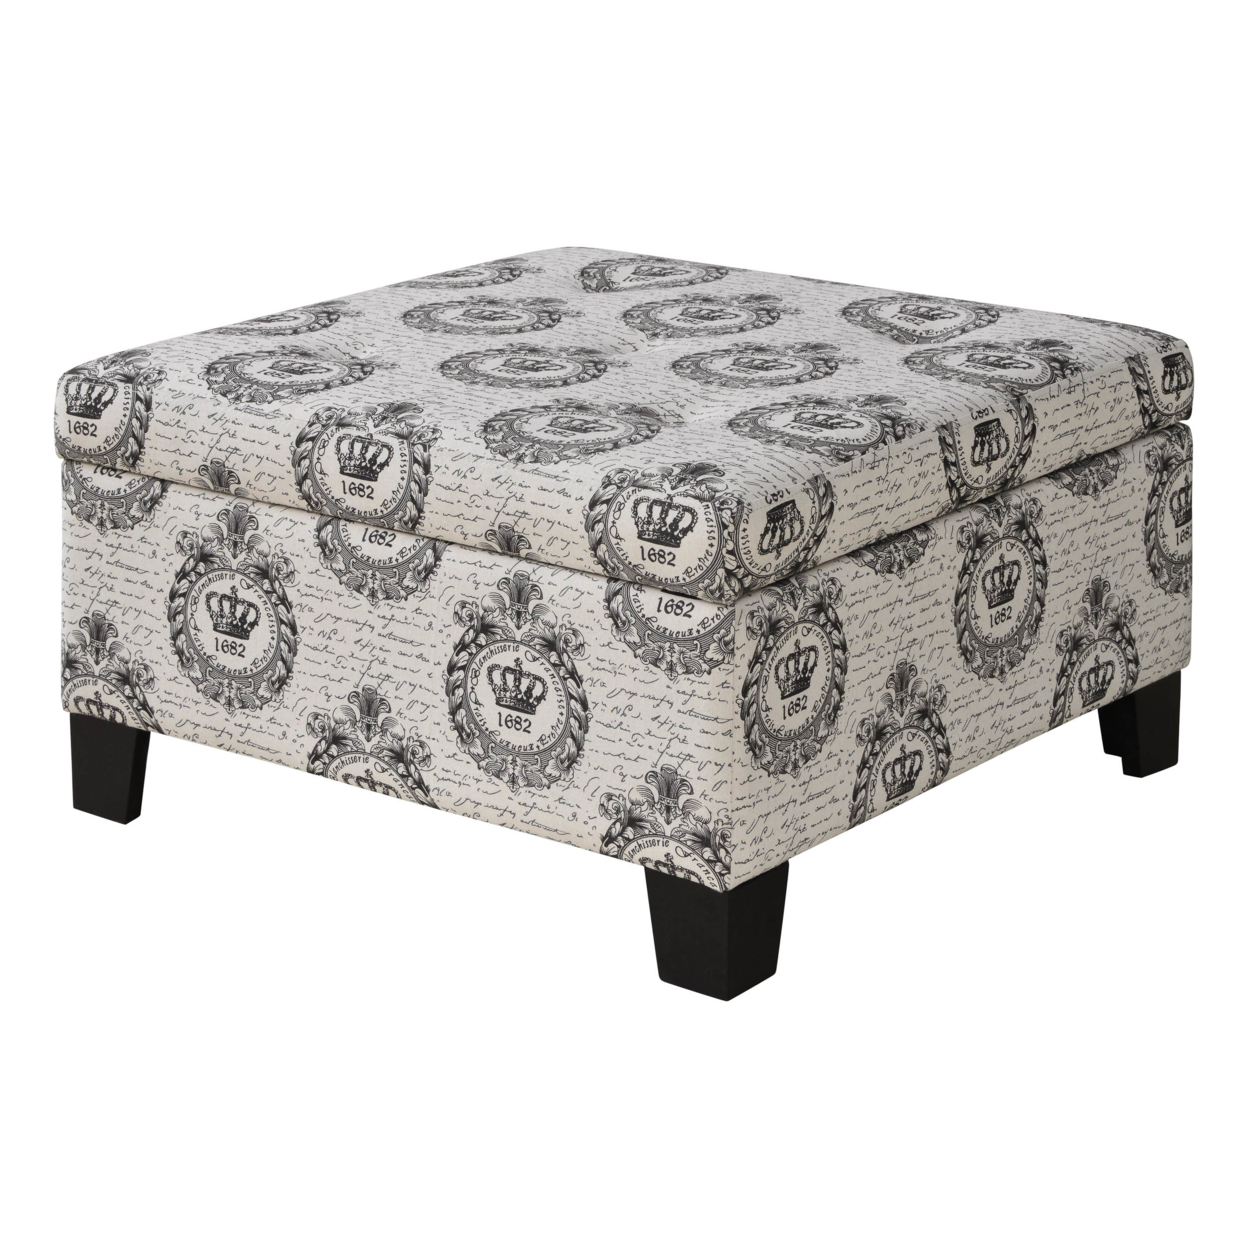 Lockport Royal Crest Storage Ottoman